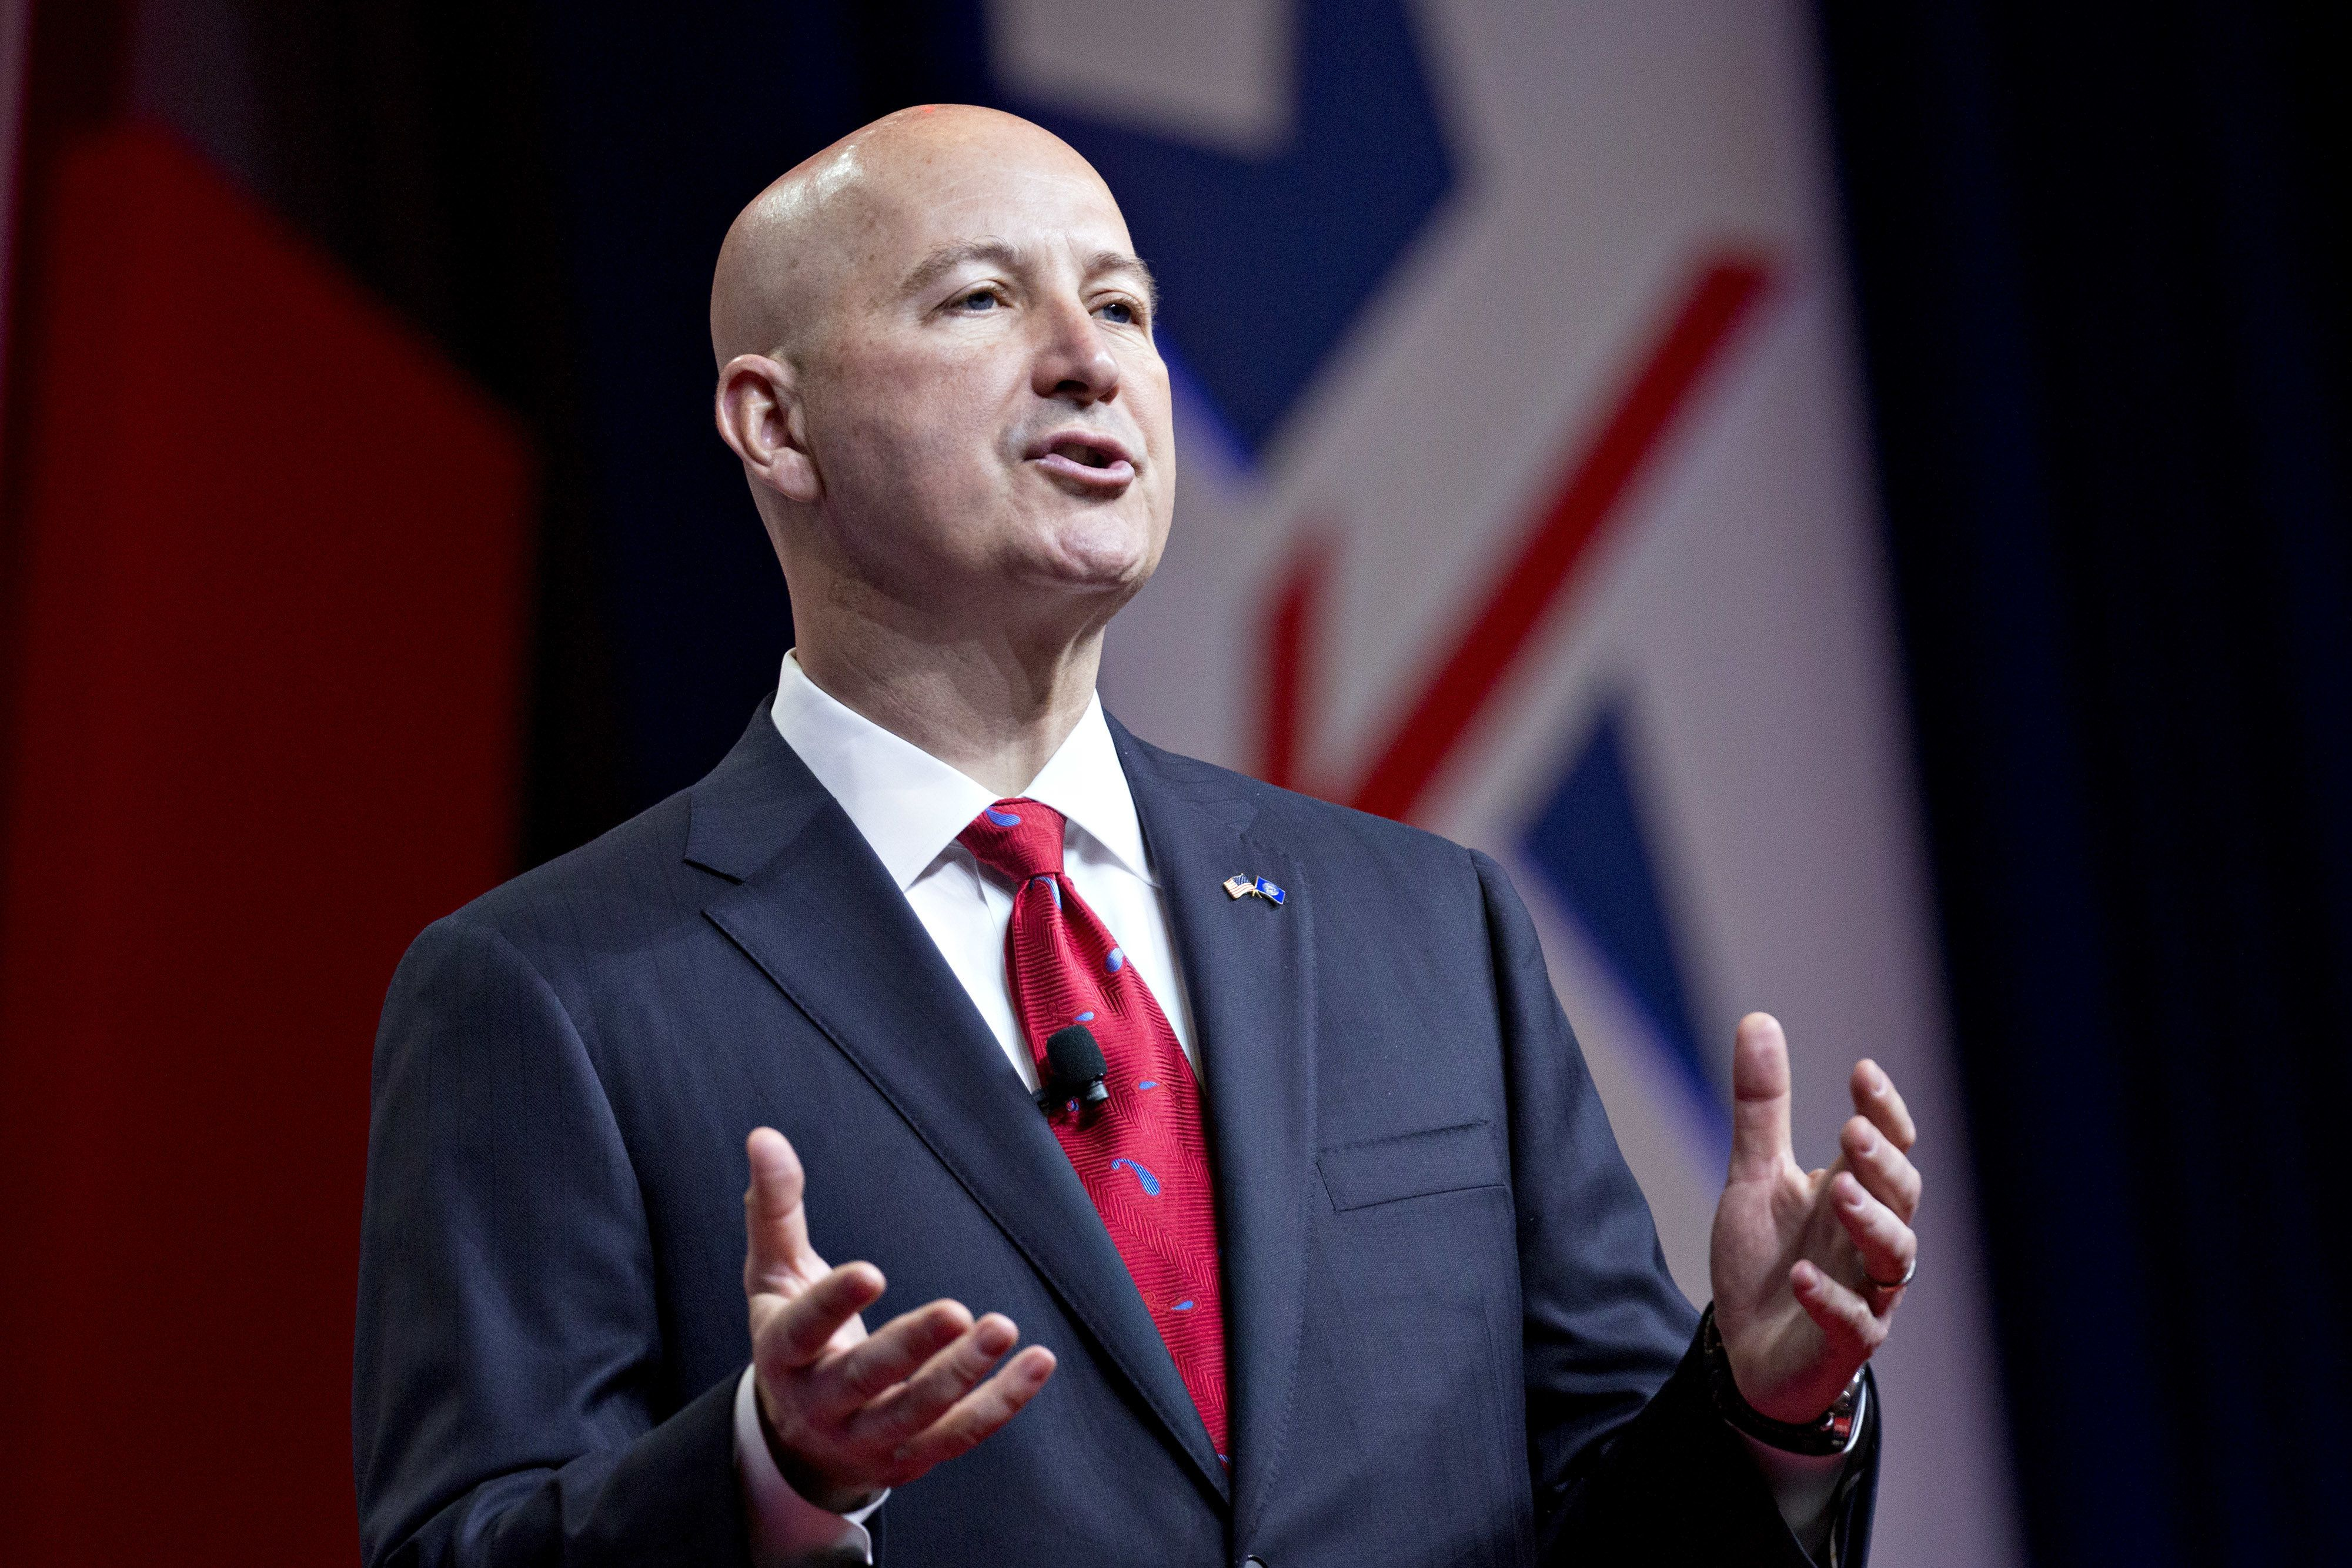 Pete Ricketts, governor of Nebraska, speaks during the SelectUSA Investment Summit in National Harbor, Maryland, U.S., on Thursday, June 21, 2018. The investment summit is dedicated to promoting foreign direct investment (FDI) in the United States and brings together companies from all over the world to facilitate business investment in America. Photographer: Andrew Harrer/Bloomberg via Getty Images